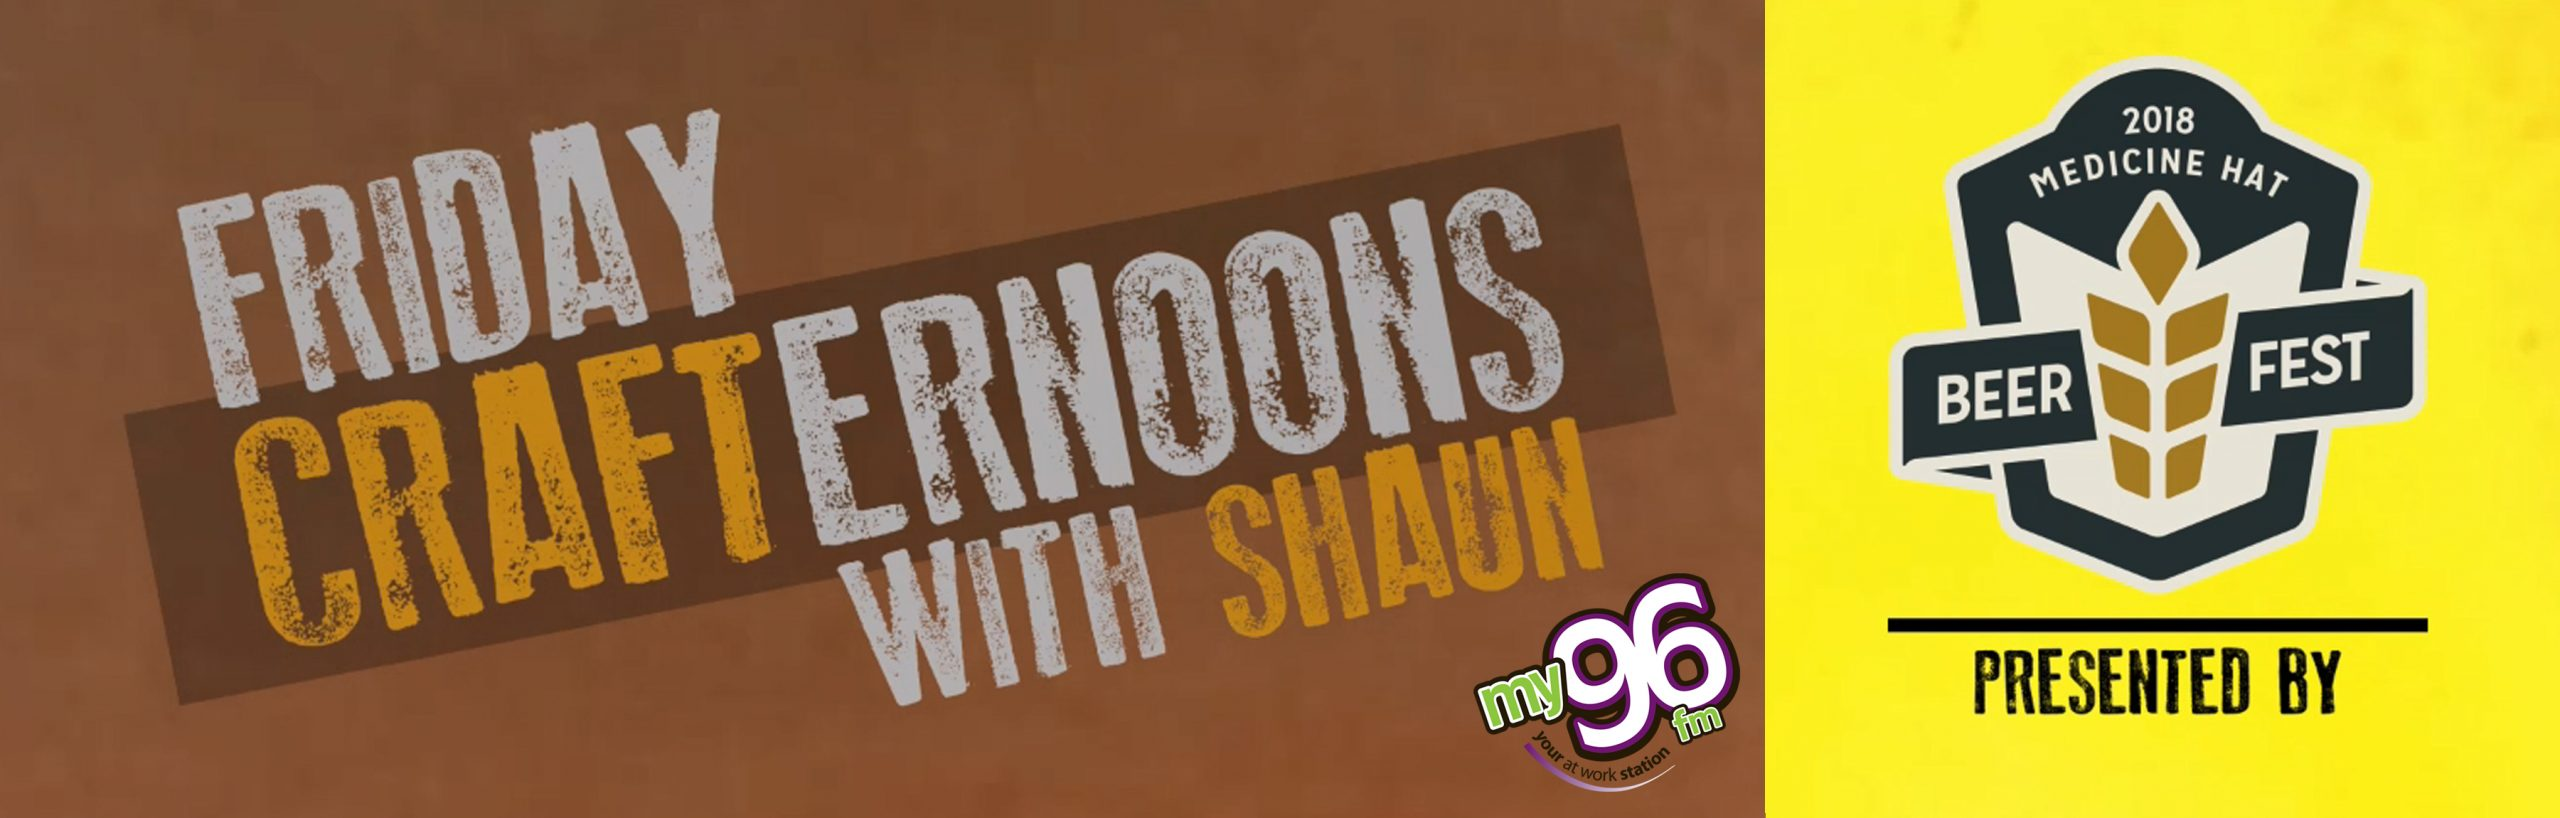 Friday Crafternoons with Shaun